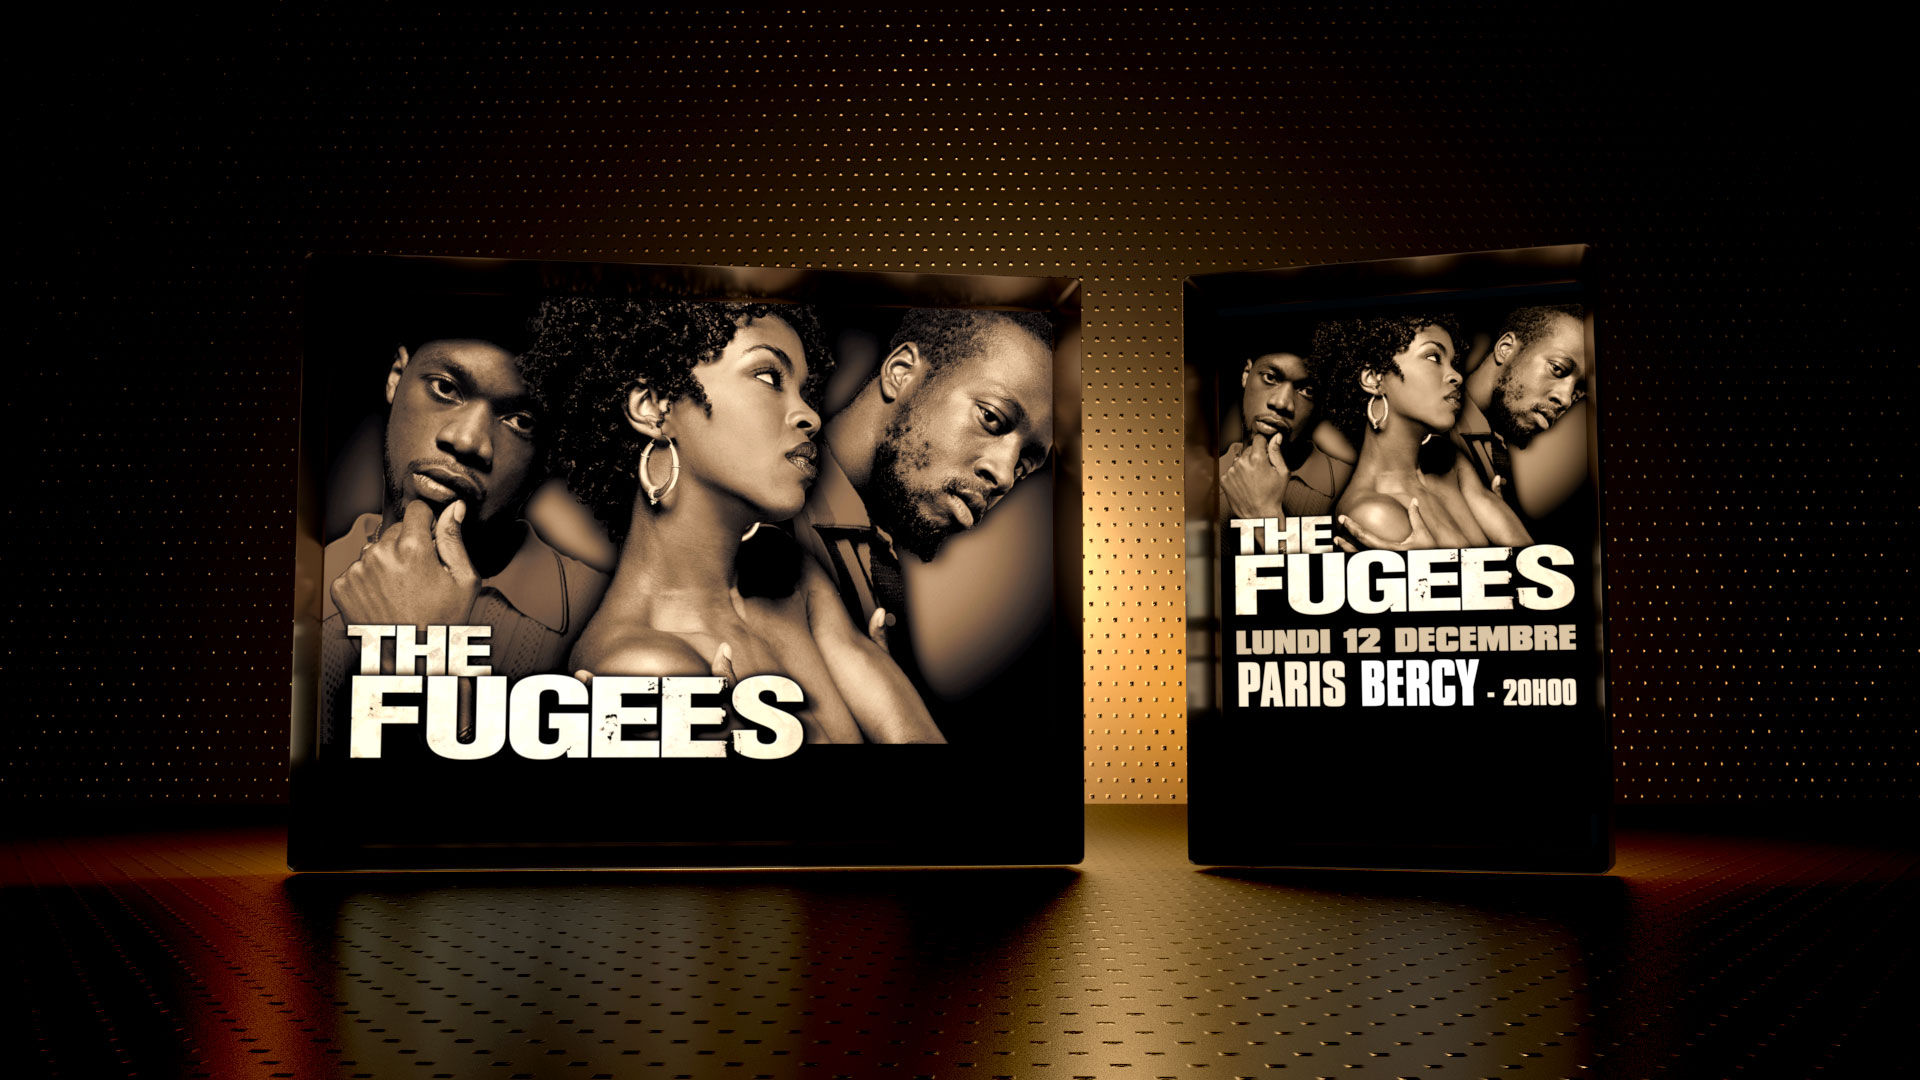 Design of the key visual Poster for the Fugees Live Tour 2005. Worldwide use.